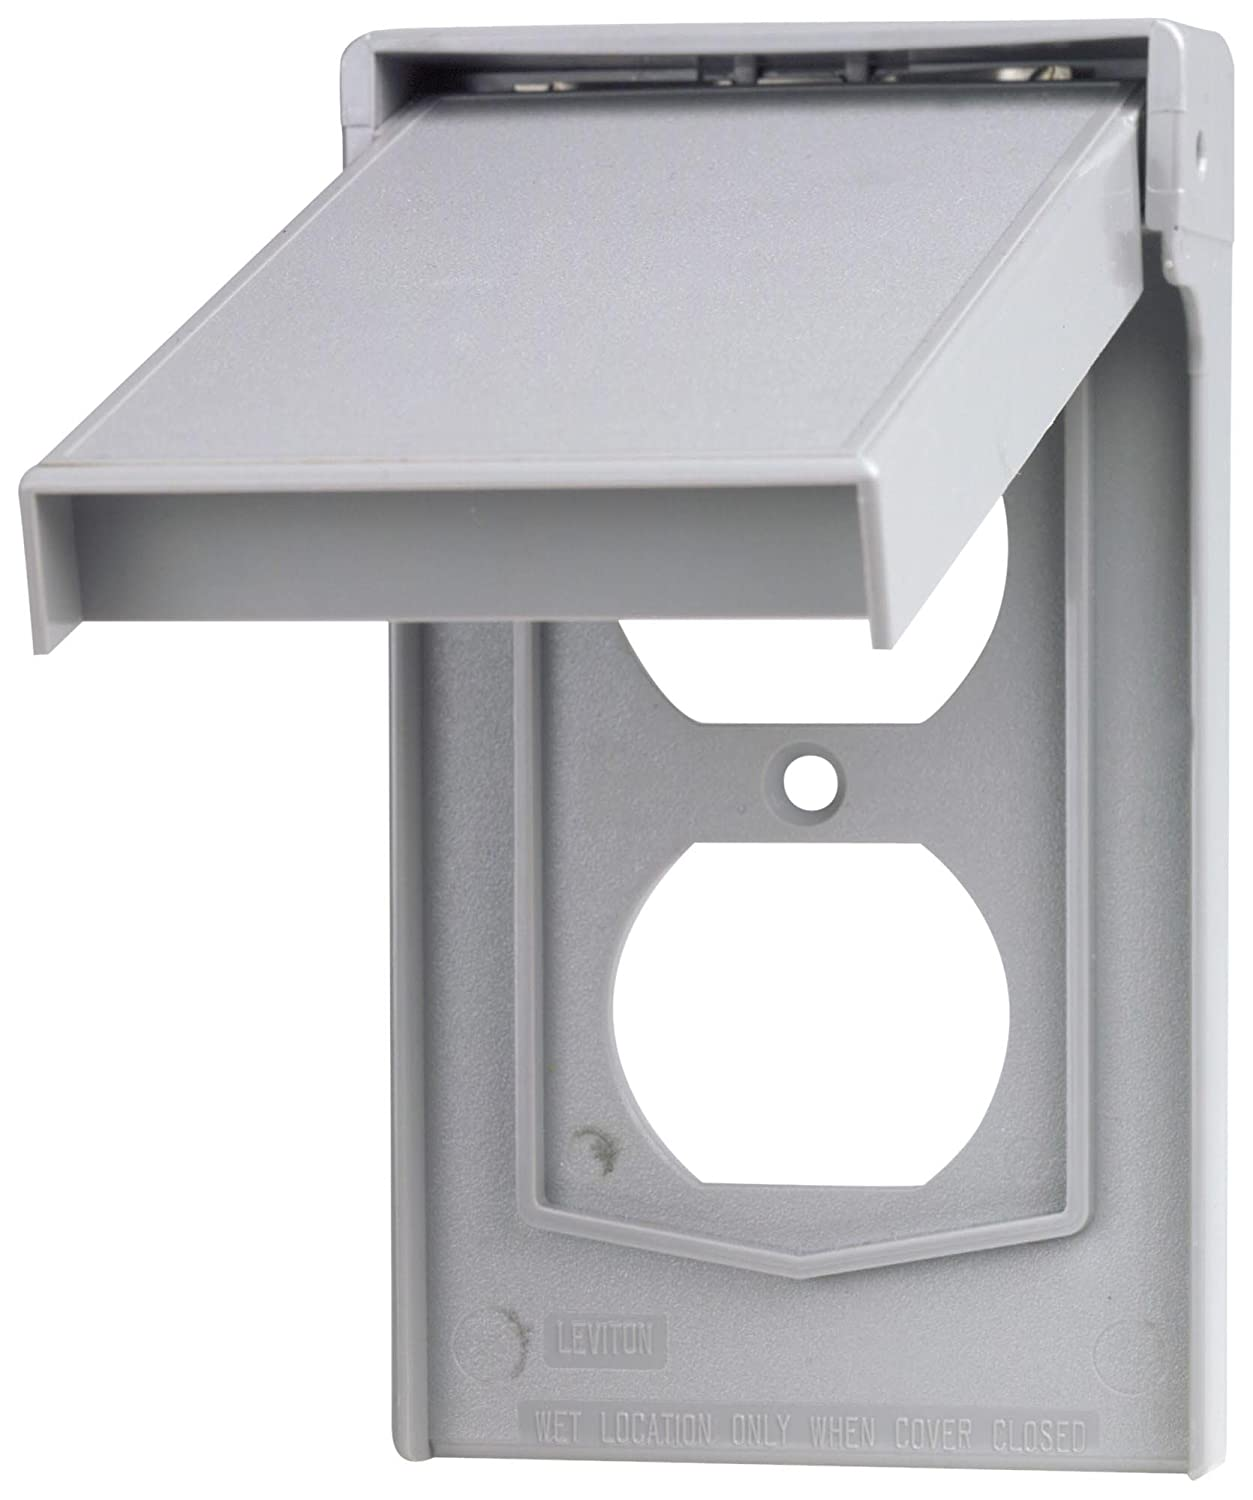 B000HEA7IY Leviton 4978-GY 1-Gang Duplex Device Wallplate Cover, Weather-Resistant, Thermoplastic, Device Mount, Vertical, Gray 712BmYY7HB0L